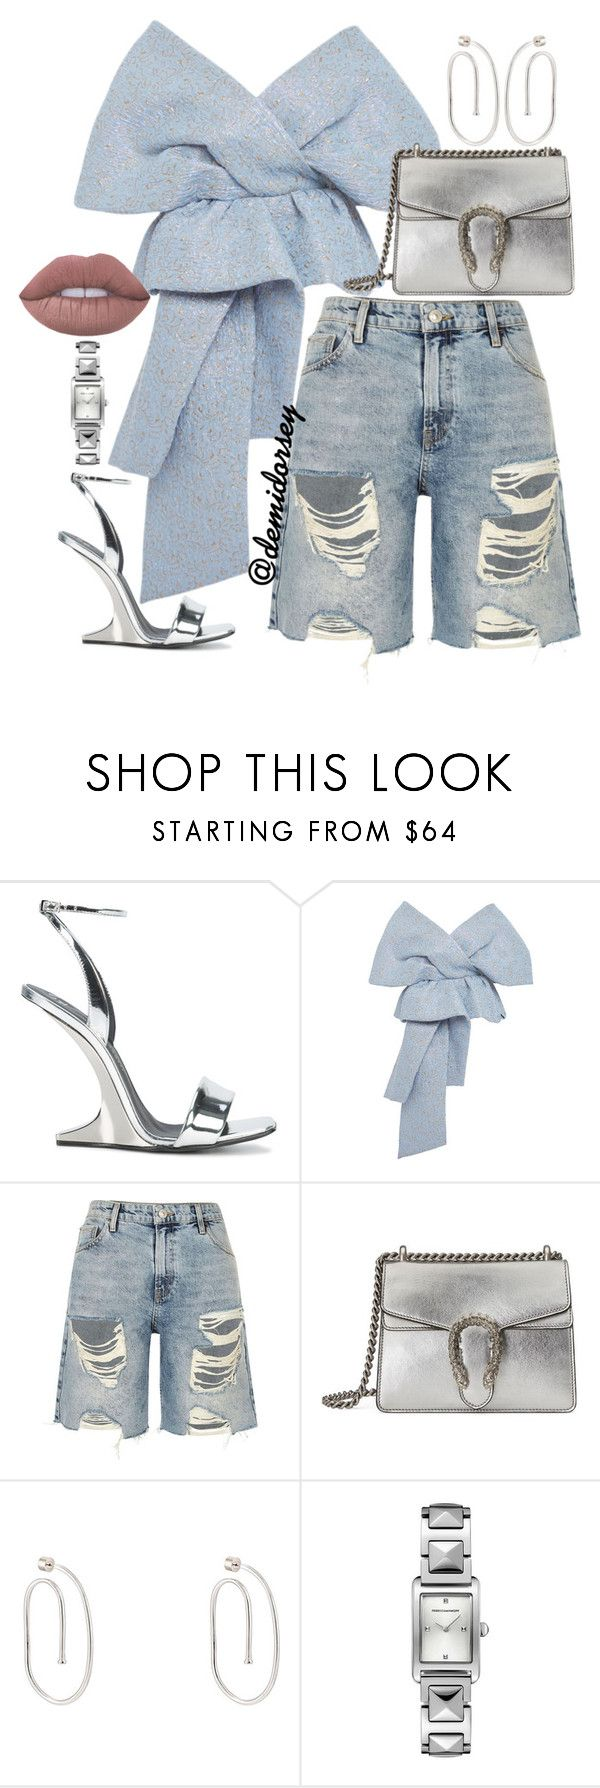 """Untitled #373"" by thedemidorsey ❤ liked on Polyvore featuring Giuseppe Zanotti, Delpozo, River Island, Gucci, Jennifer Fisher and Rebecca Minkoff"